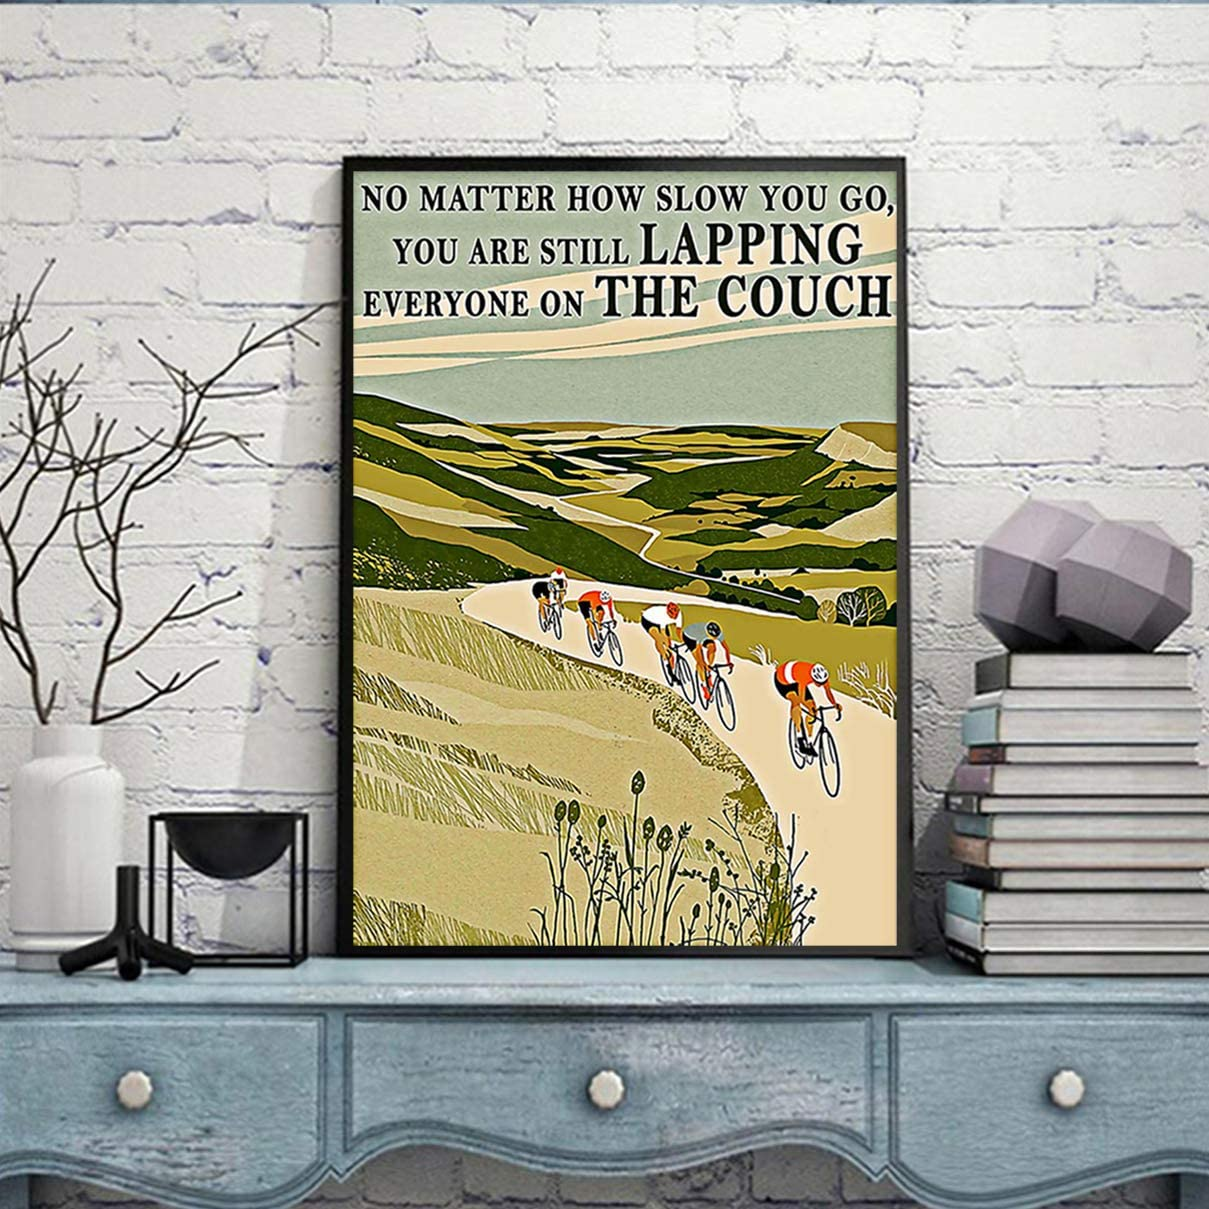 HETRALE STORE Cycling No Matter How Slow You Go You are Still Lapping Everyone On The Couch Posters - Canvas Print Perfect, Ideas On Xmas, Birthday, Home Decor30, Full Size (1